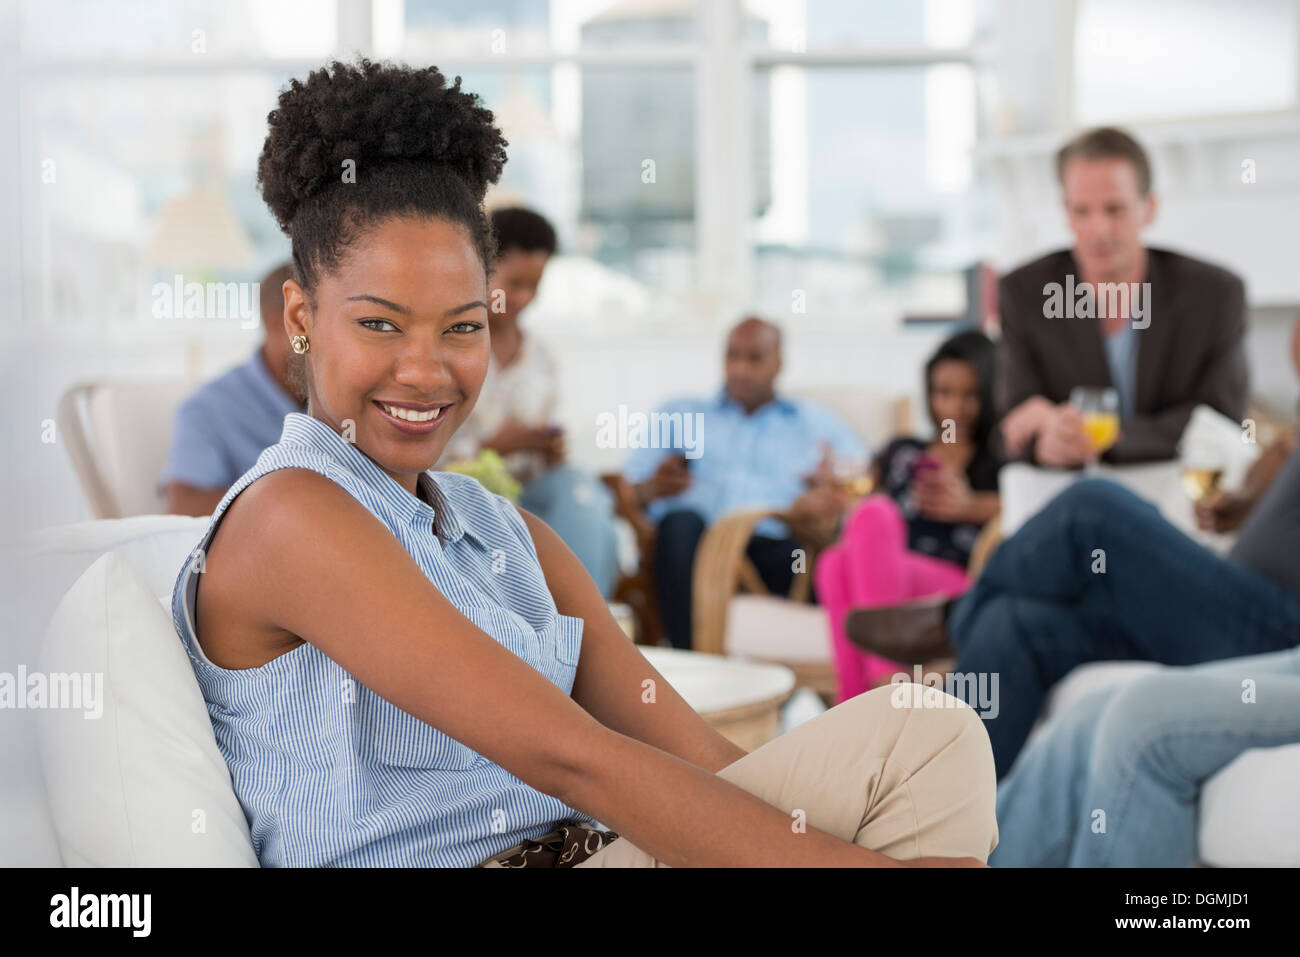 Office. A young woman smiling broadly. - Stock Image